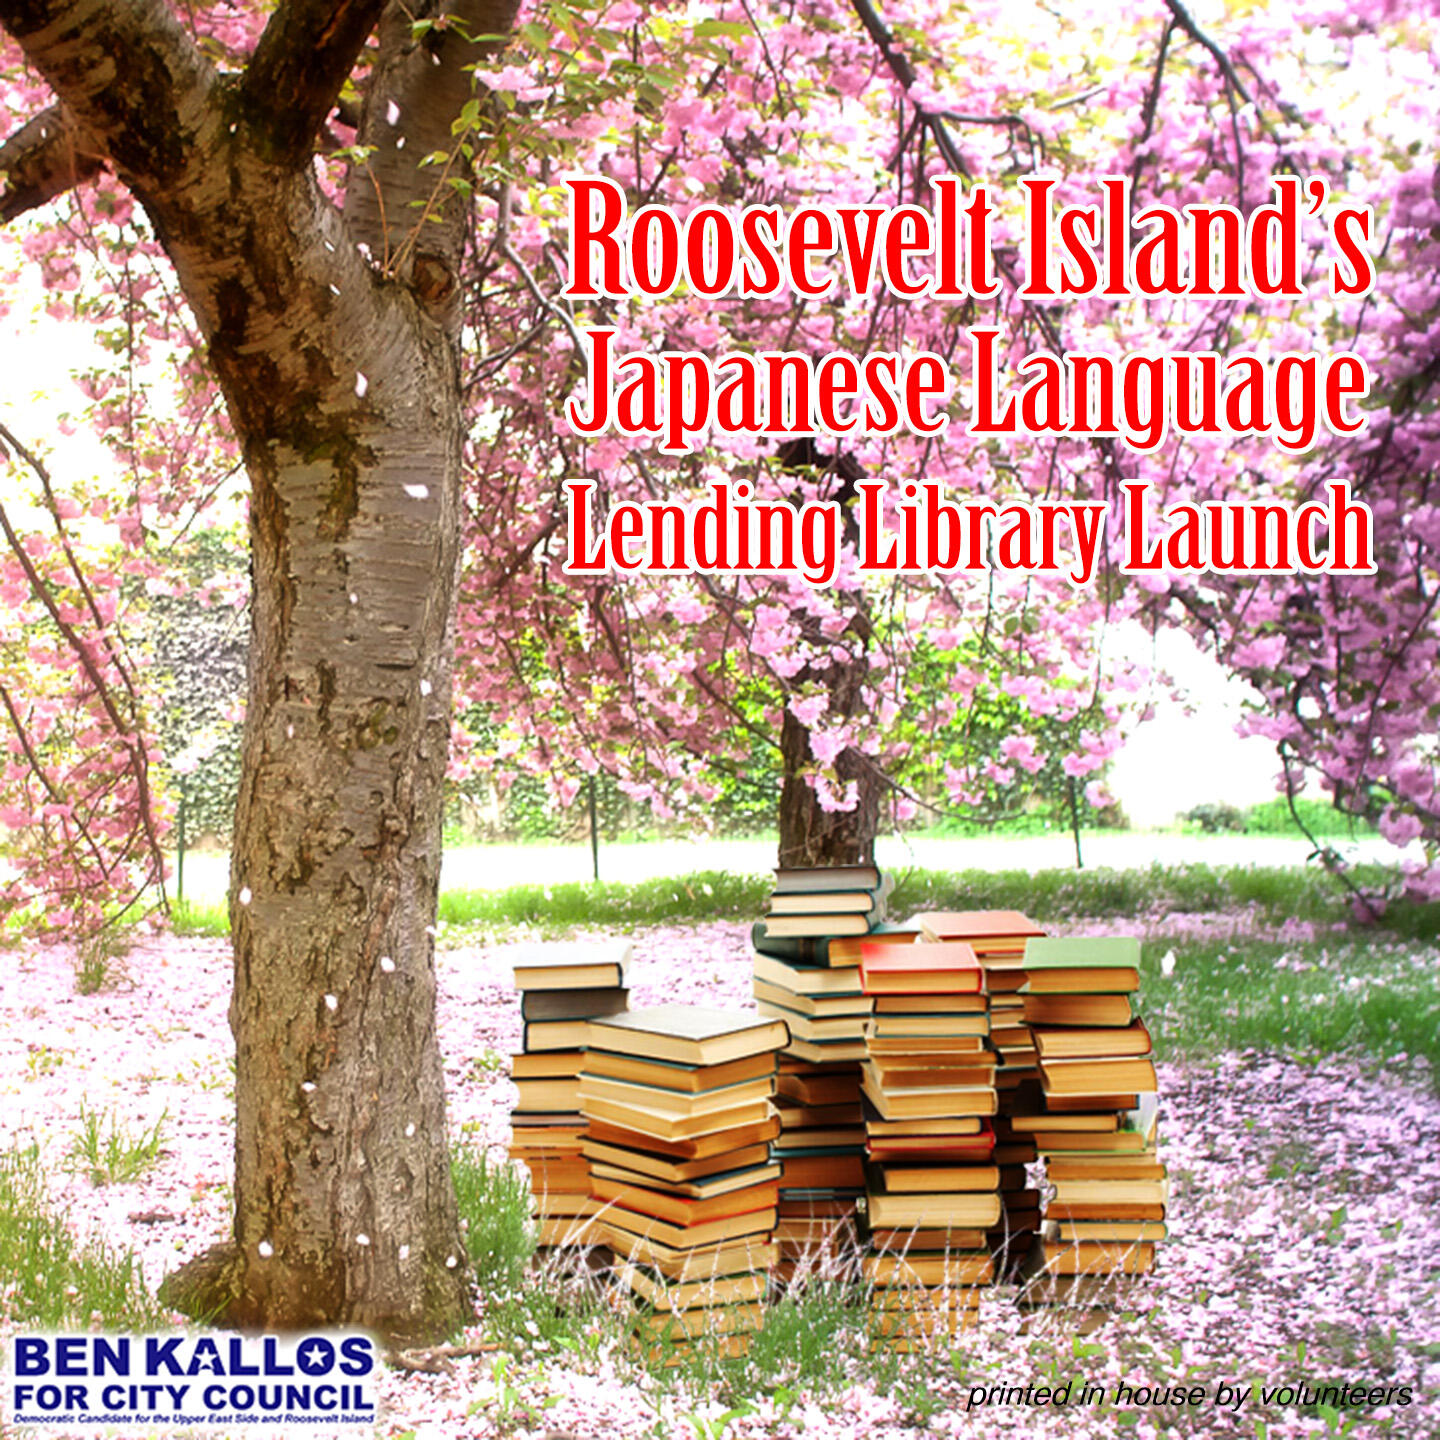 Roosevelt Island's Japanese Langauge Lending Library, started by Ben Kallos